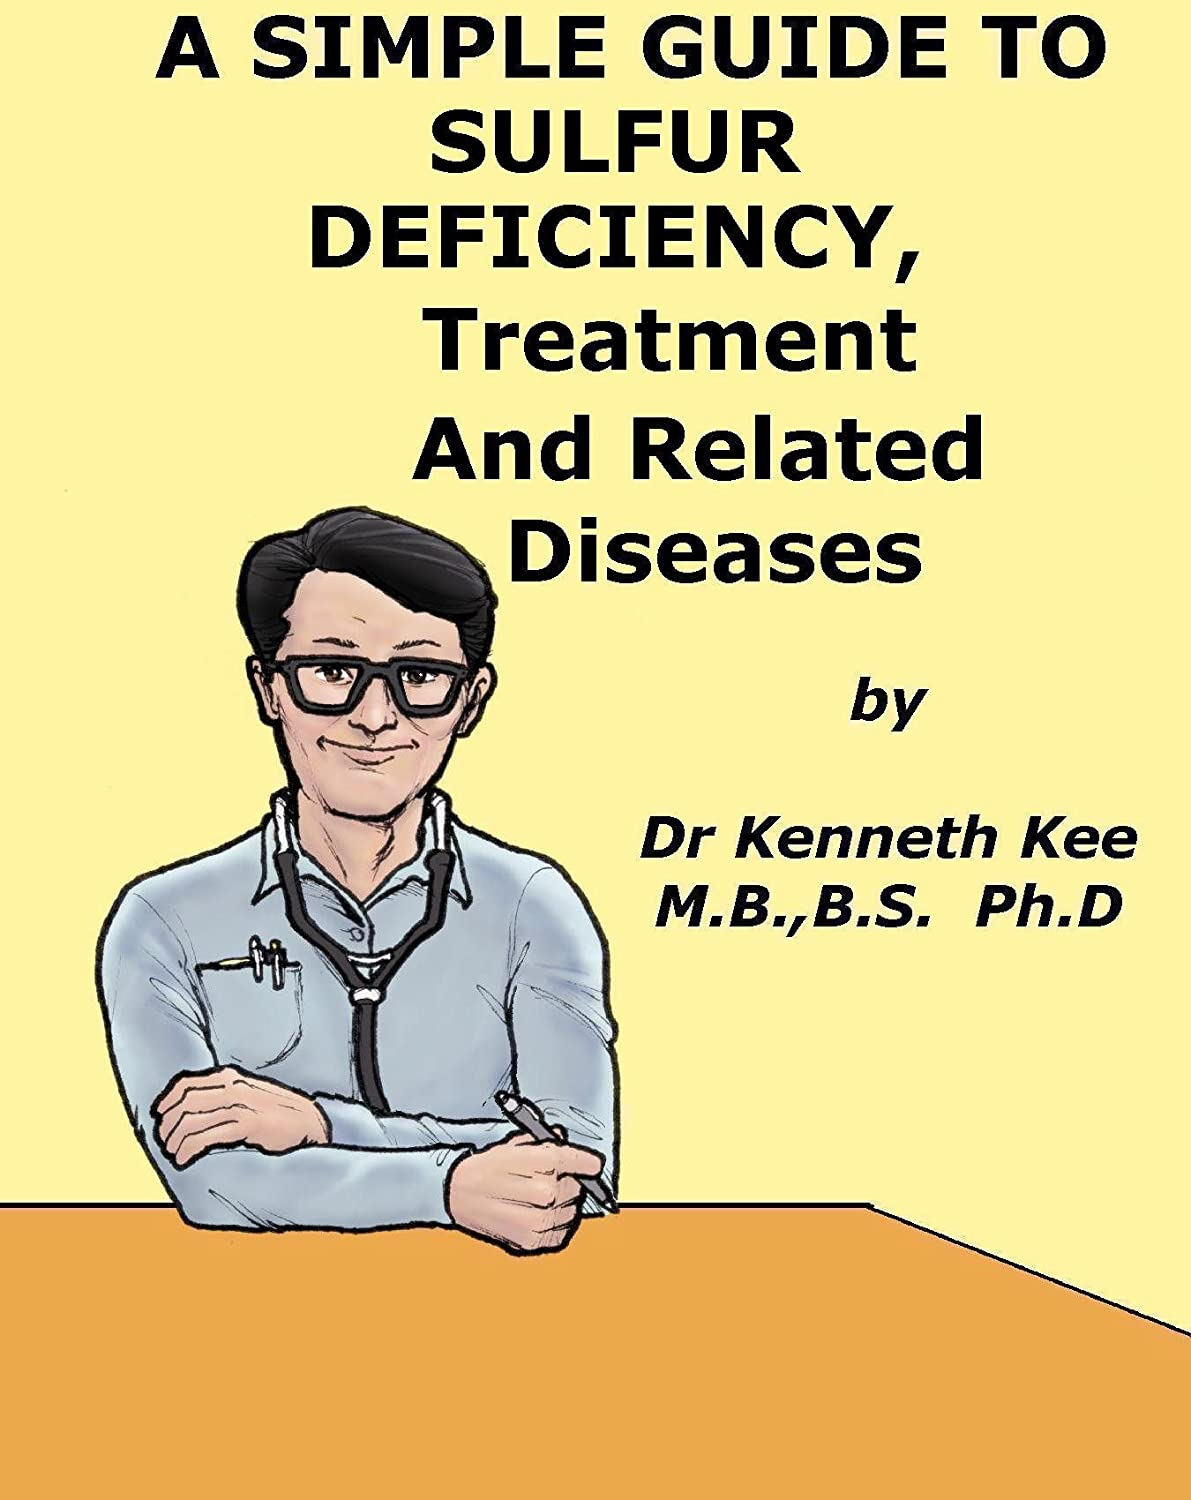 A Simple Guide to Sulfur Deficiency, Treatment and Related